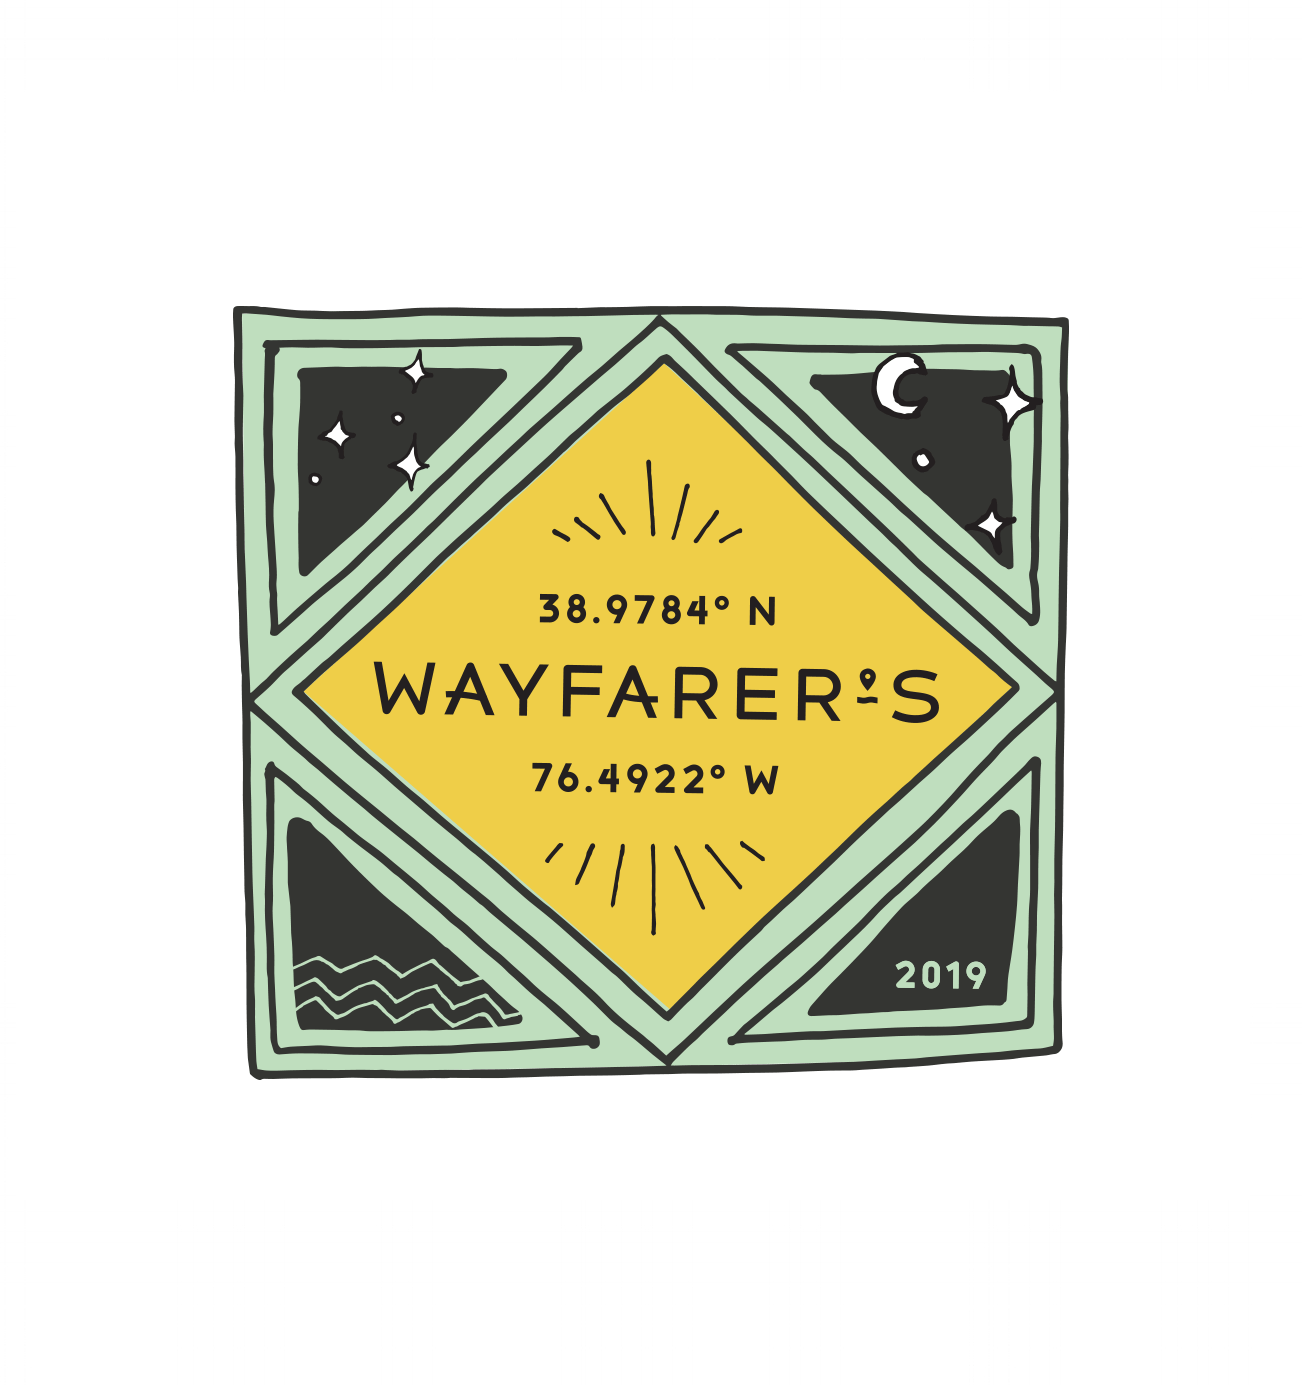 RACE PATCH   All 2019 runners will receive a patch for running Wayfarer's Annapolis.